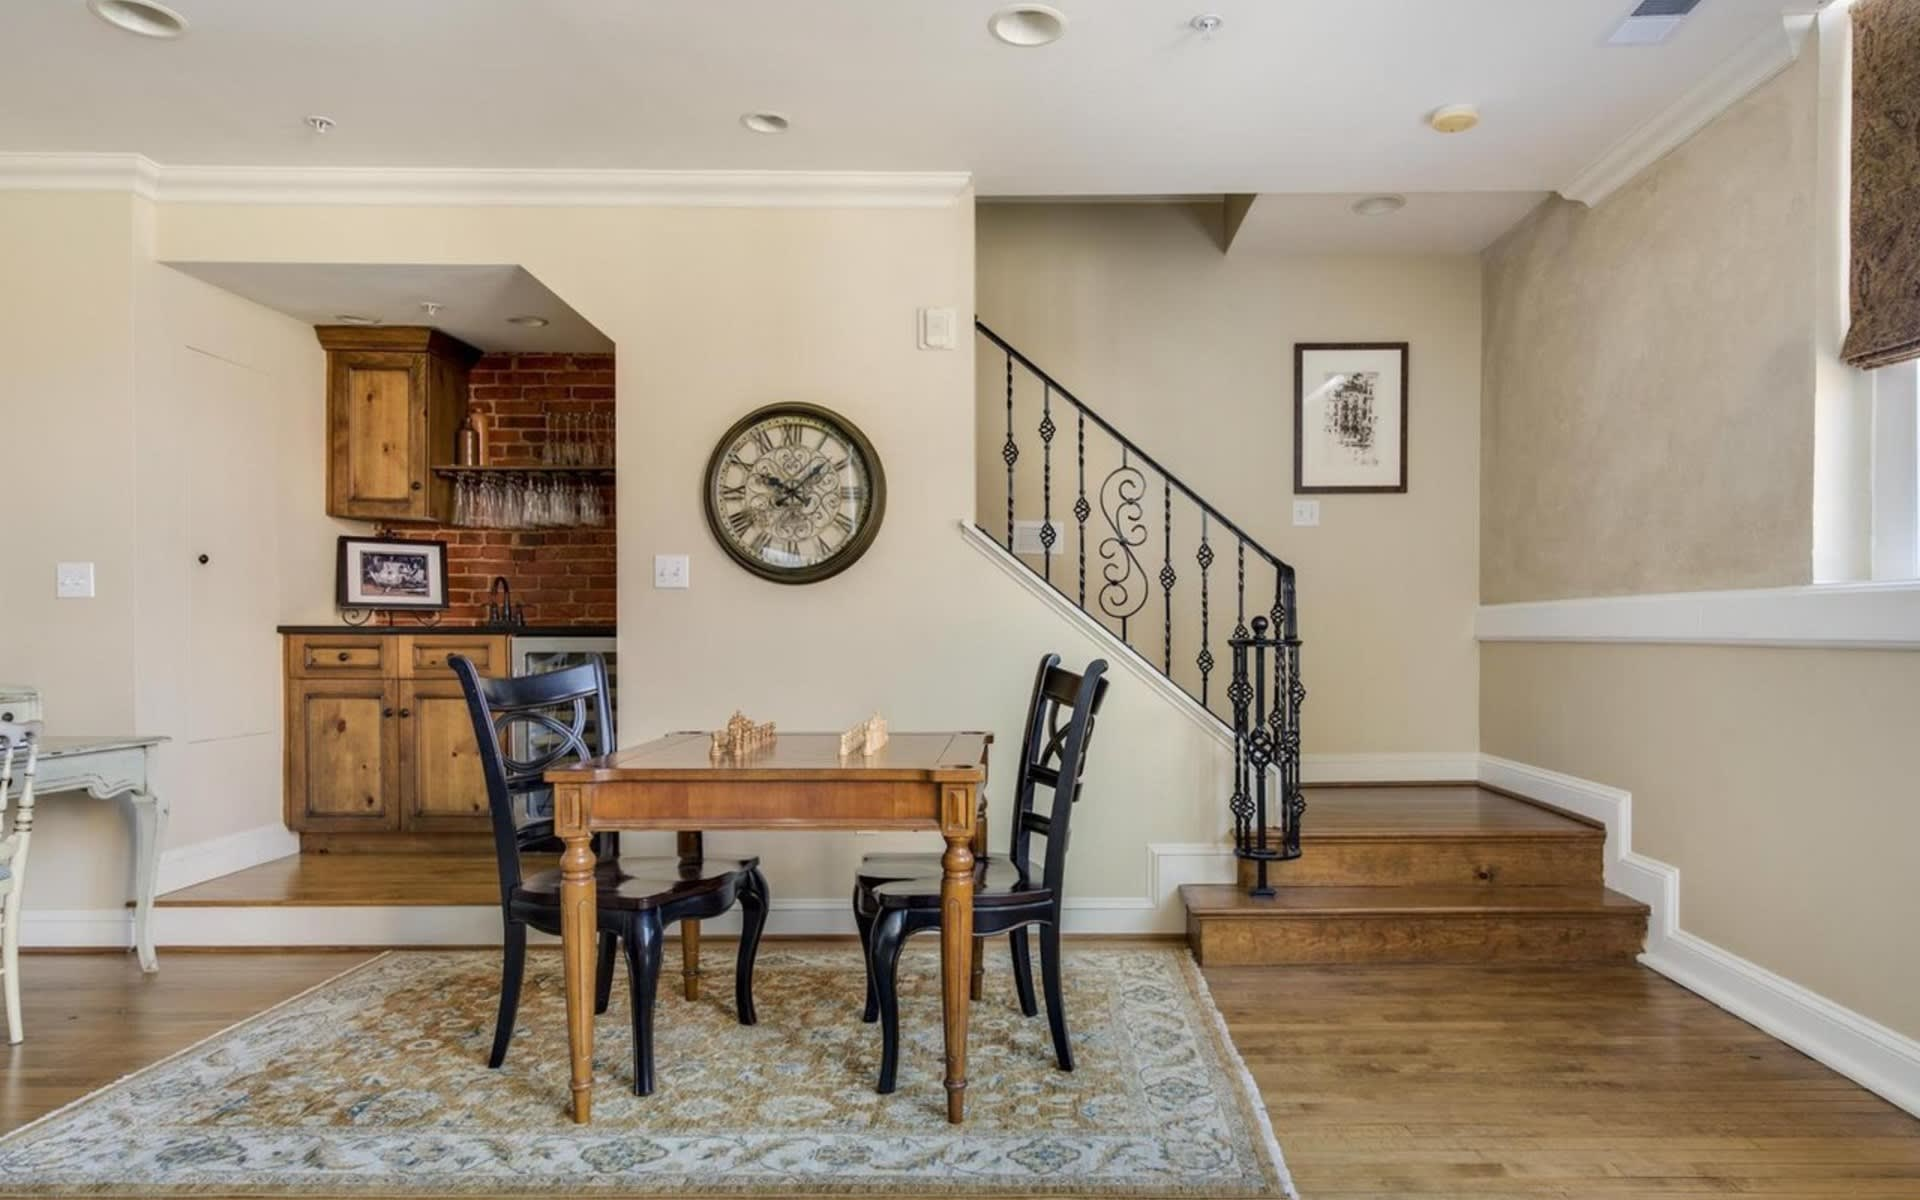 39 1/2 Maryland Ave. #2, Annapolis, Maryland 21401 - Downtown Annapolis Church Conversion video preview